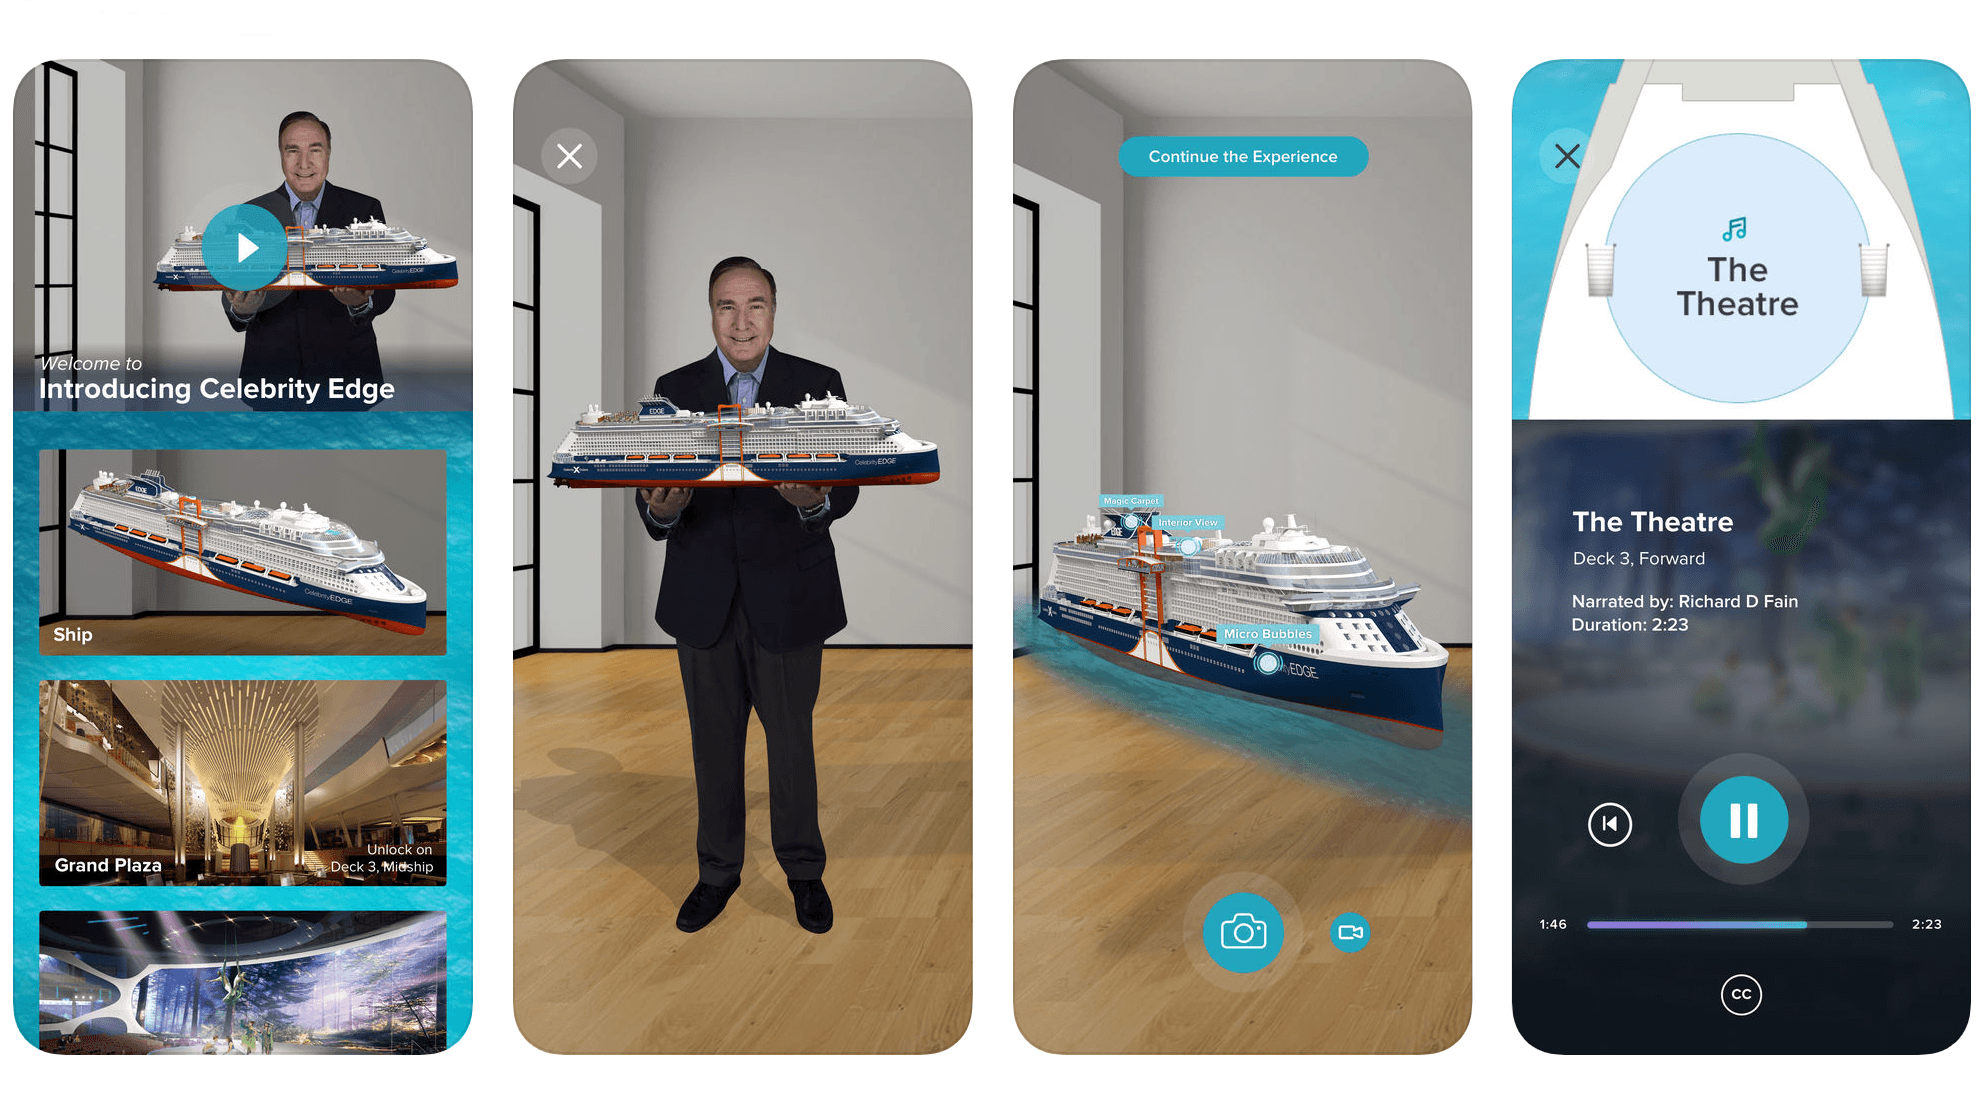 Royal Caribbean Celebrity Edge App